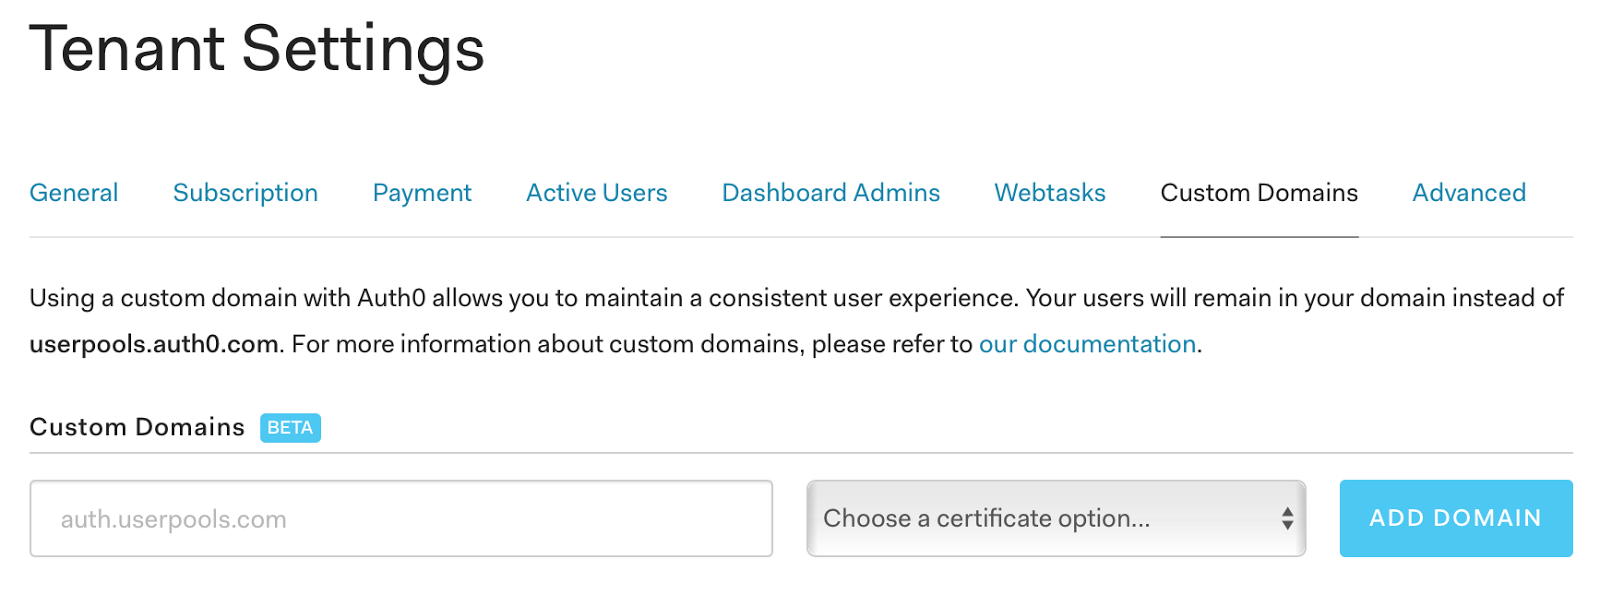 Auth0 custom domains tenant settings